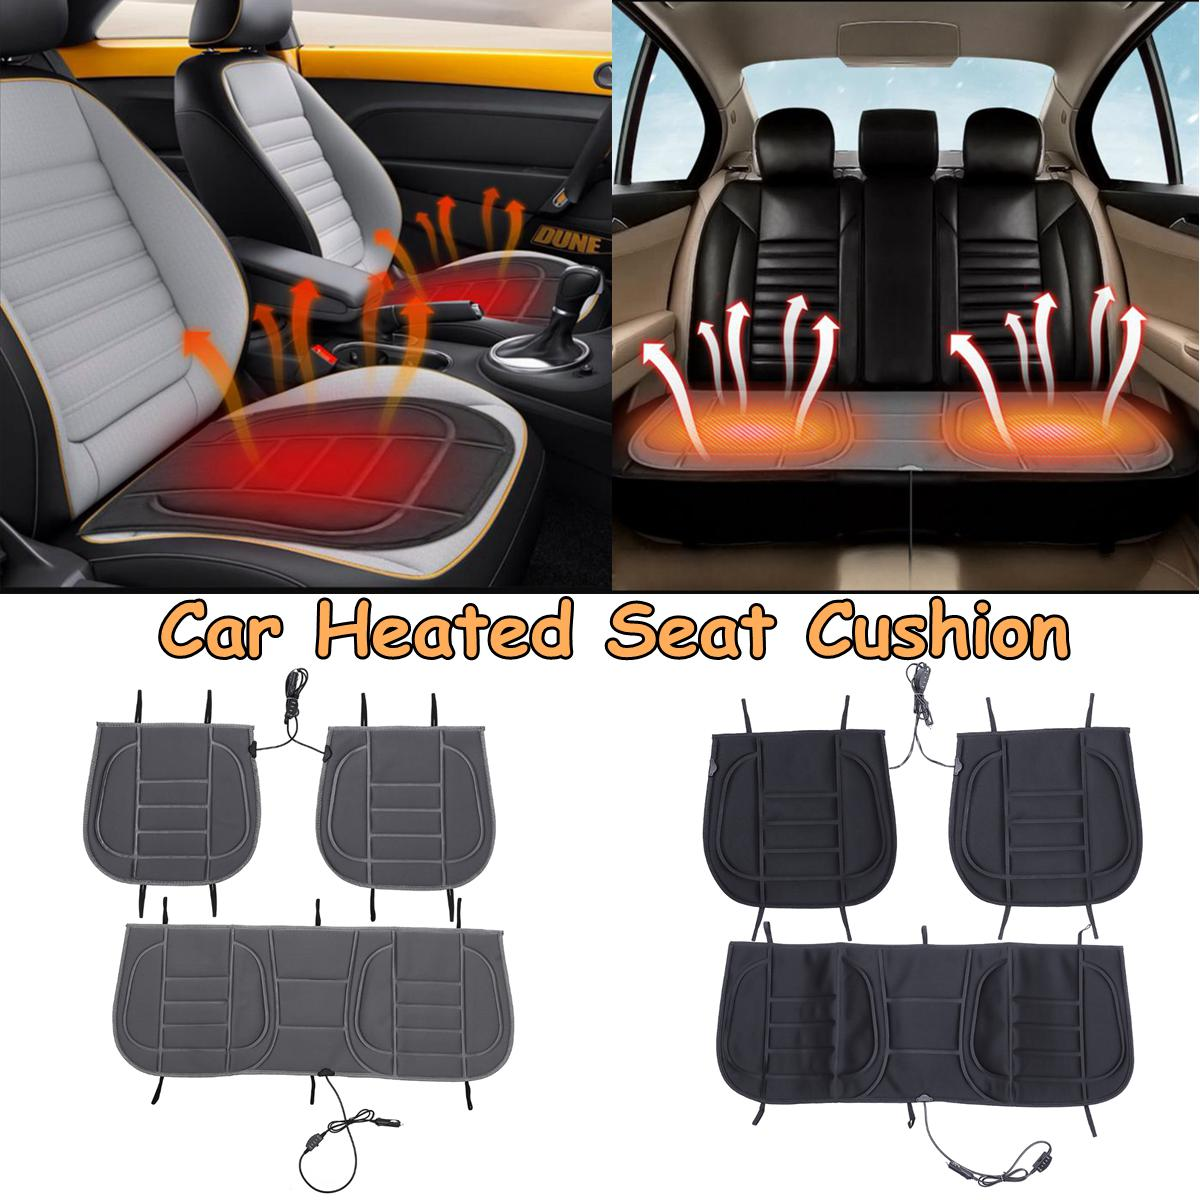 Heated-Cushion-Covers Warmer Heating-Pad Car-Seat Universal Front Winter Rear 12V